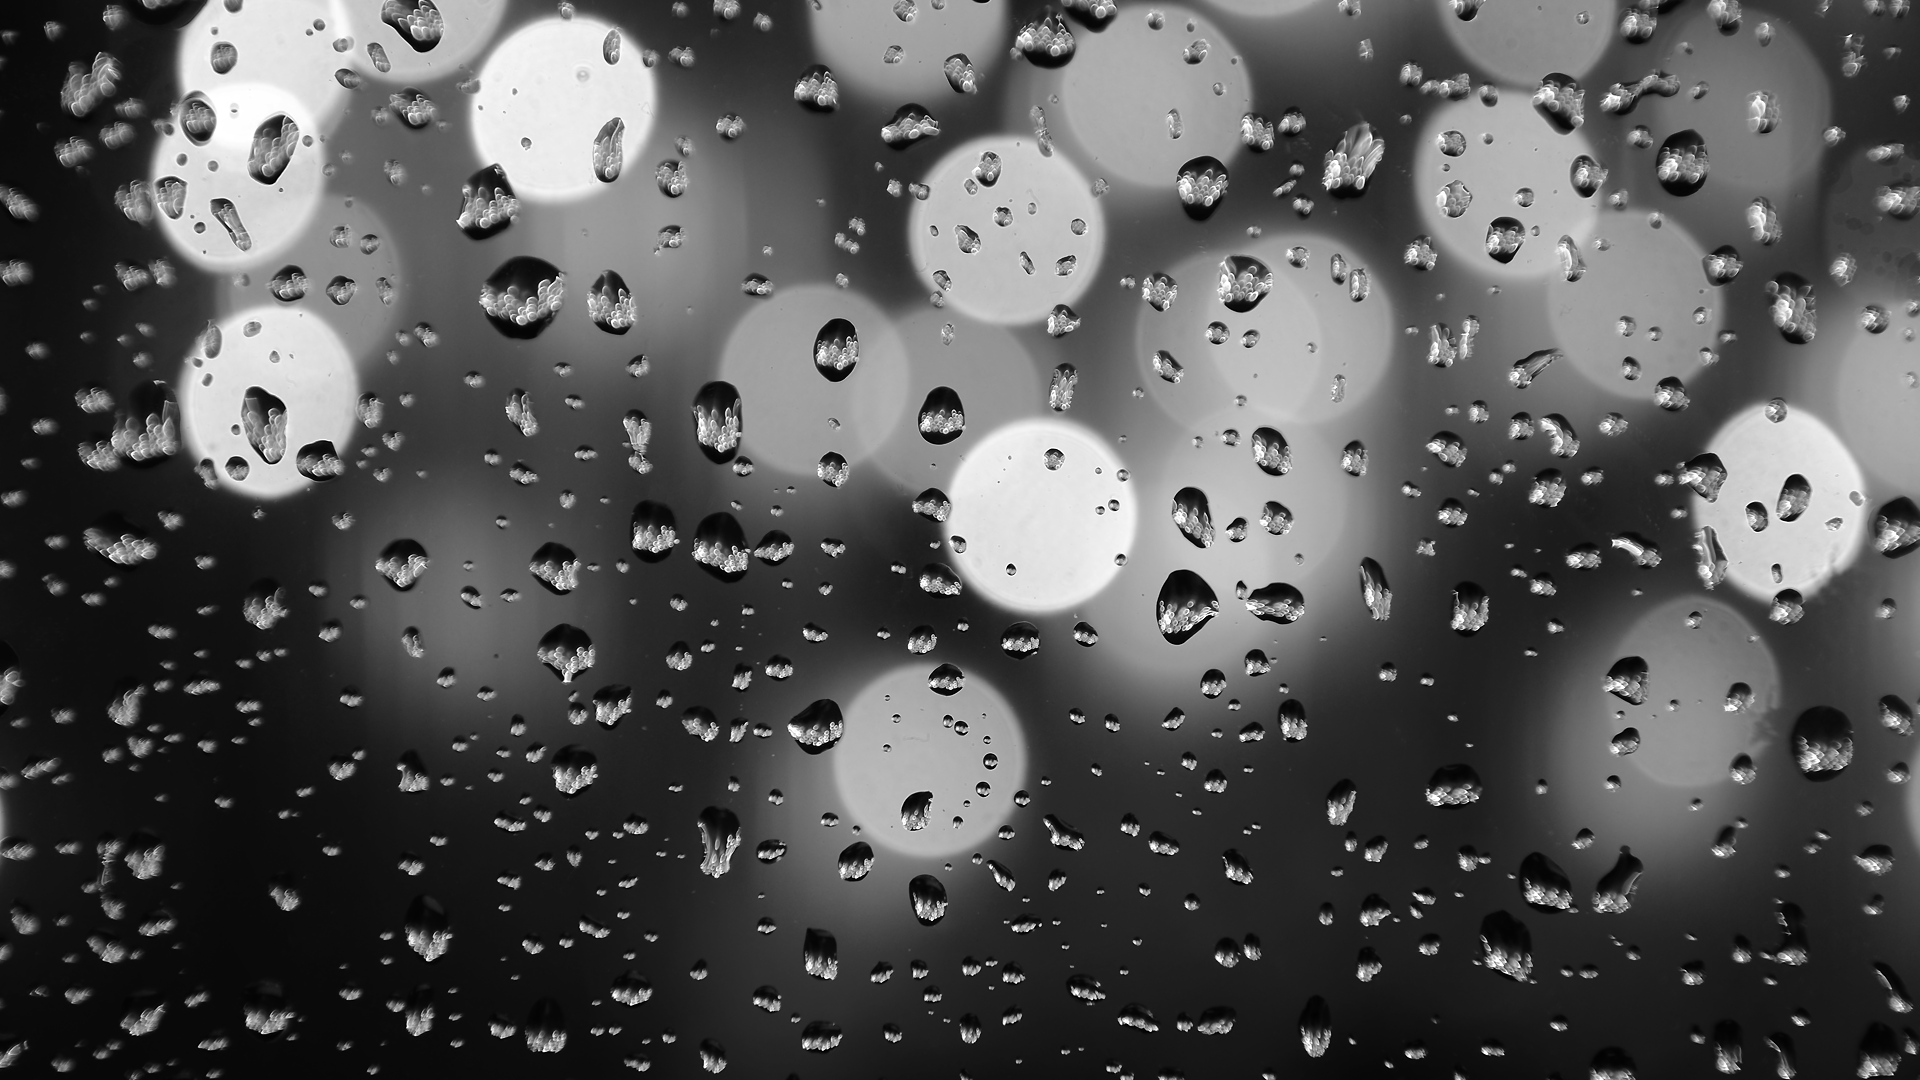 Download Black And White Rain Wallpaper Photo i8s0j